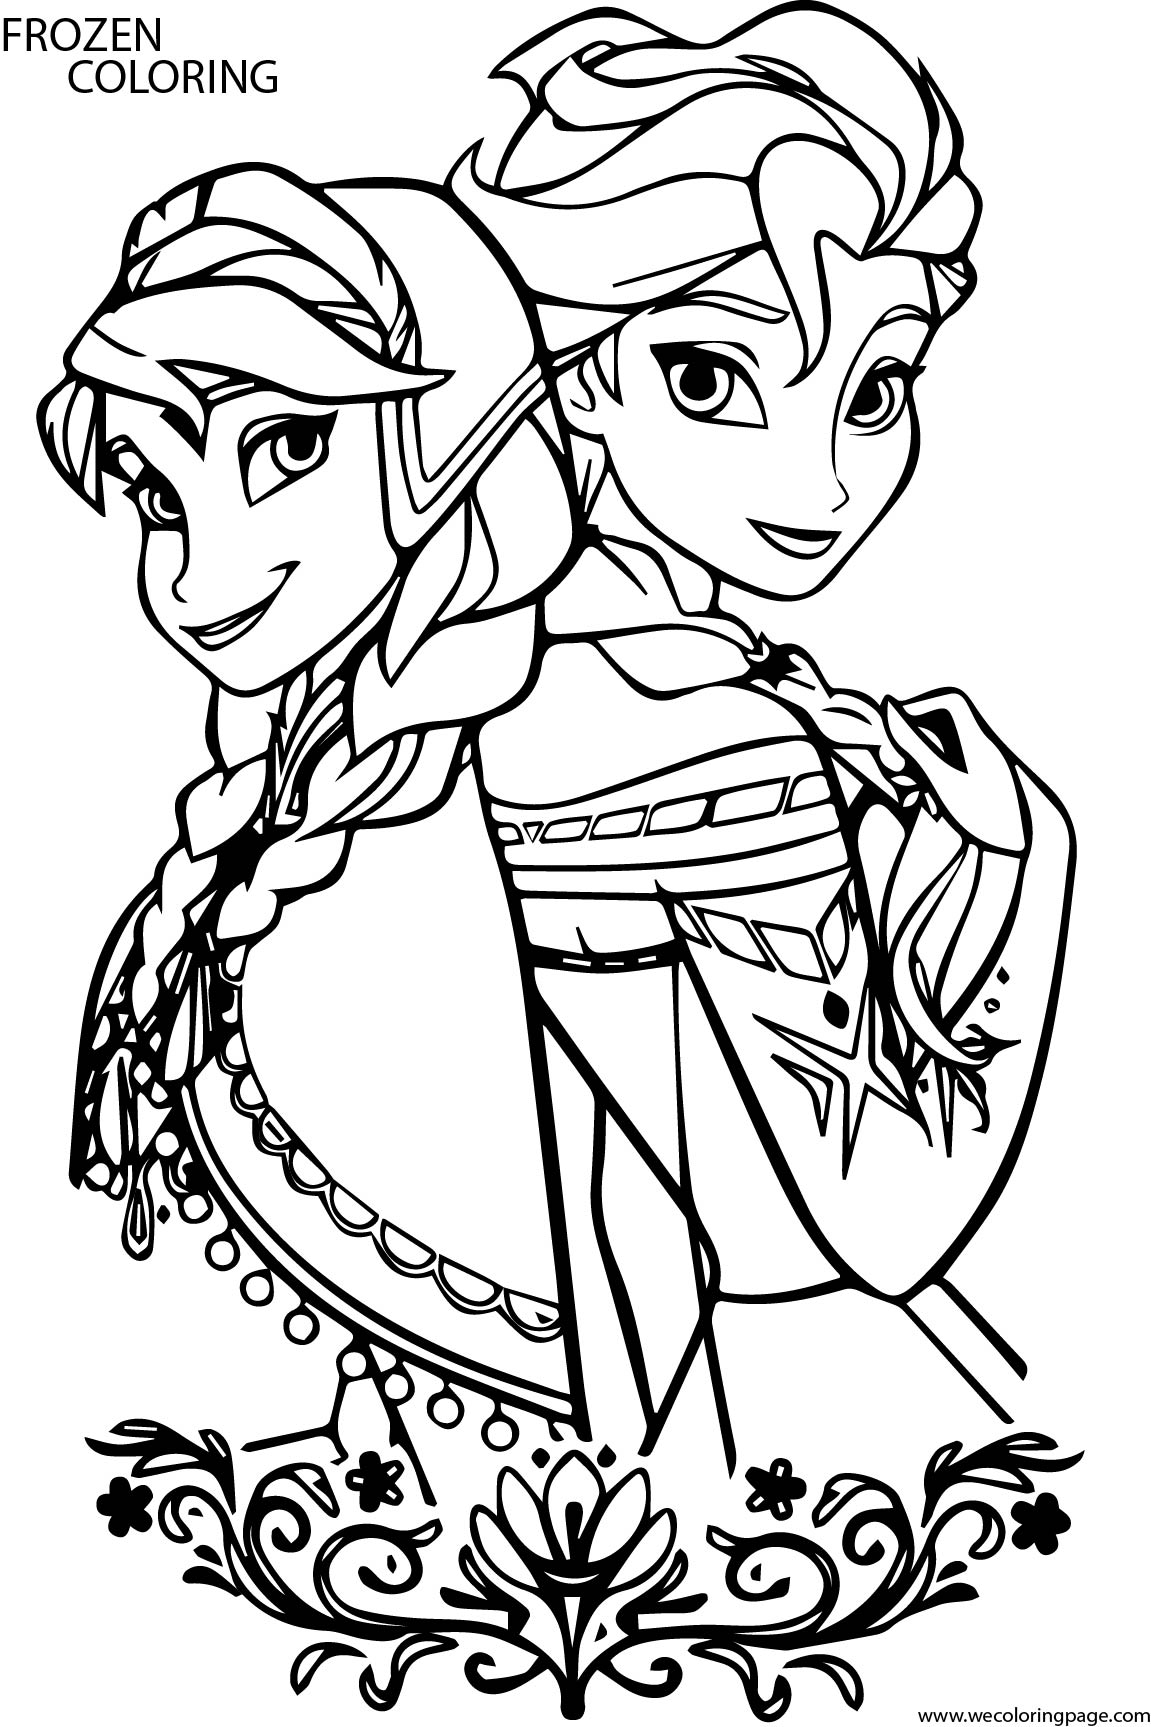 frozen colouring pages new frozen 2 coloring pages with elsa youloveitcom pages colouring frozen